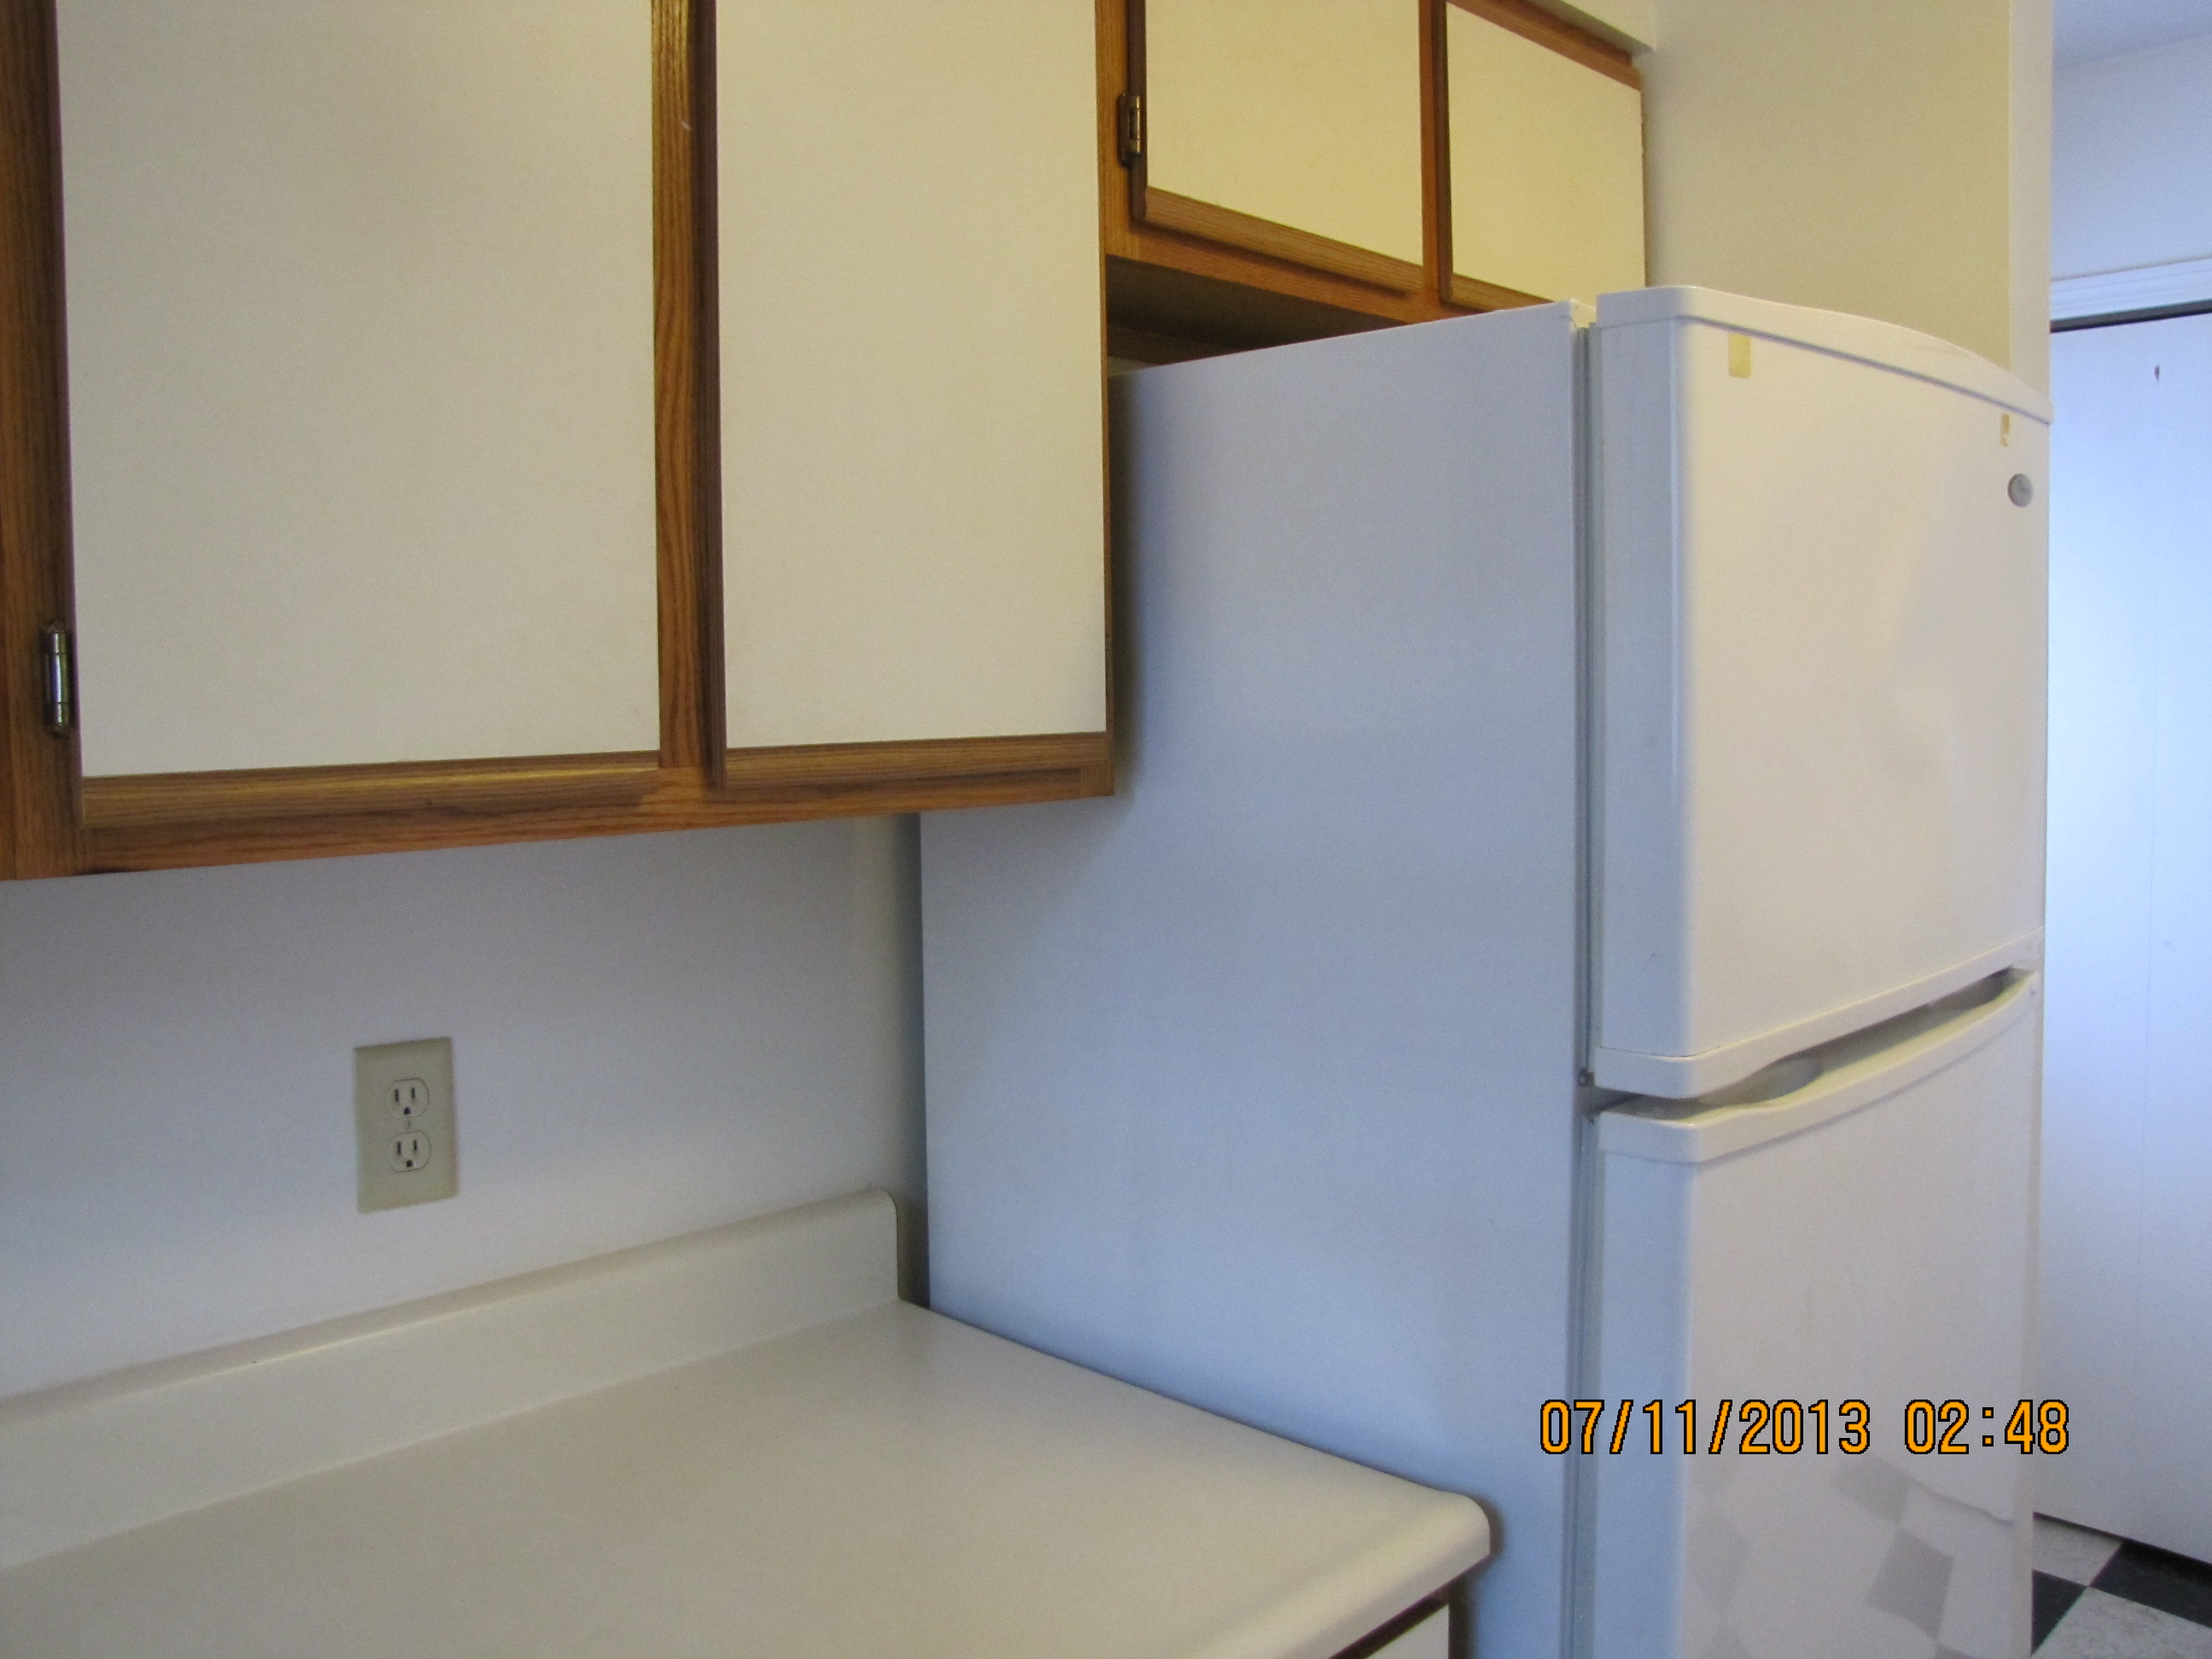 Refrigerator Options Housing Options Duplexes Lifedesigns